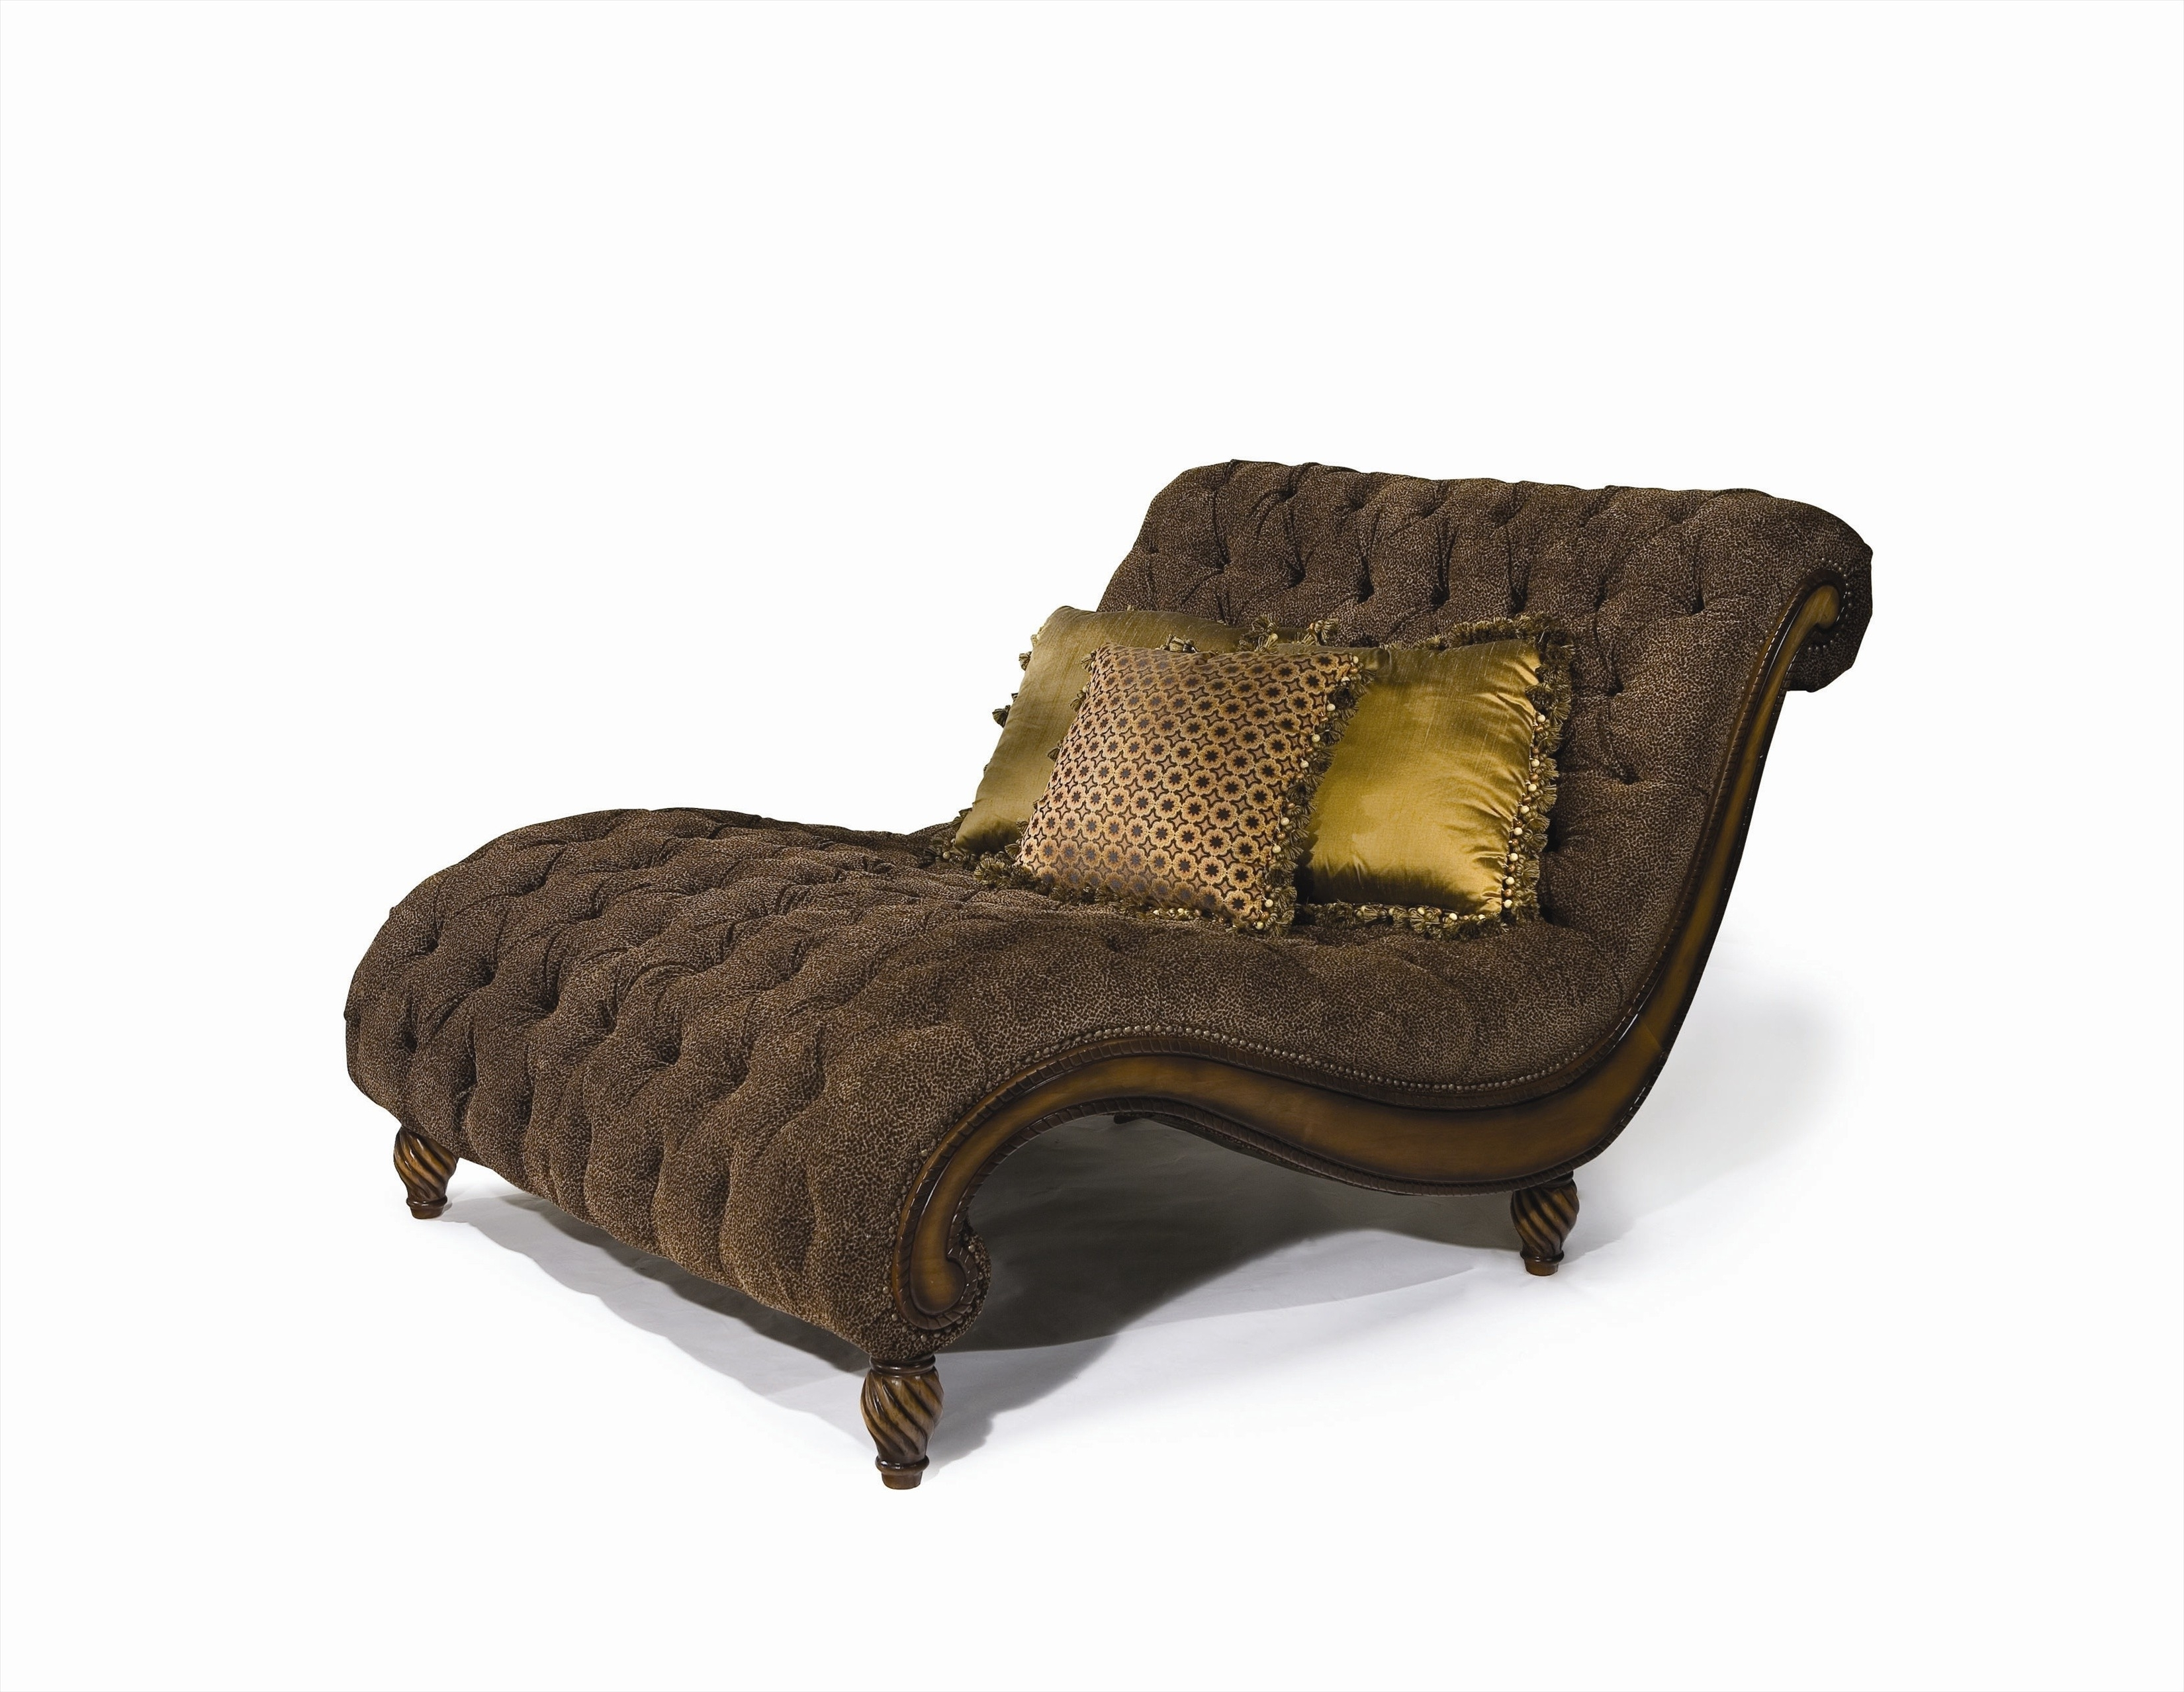 Newest Curved Brown Tufted Velvet Chaise Lounge Chairs With Rolled Back Intended For Velvet Chaise Lounge Chairs (View 11 of 15)